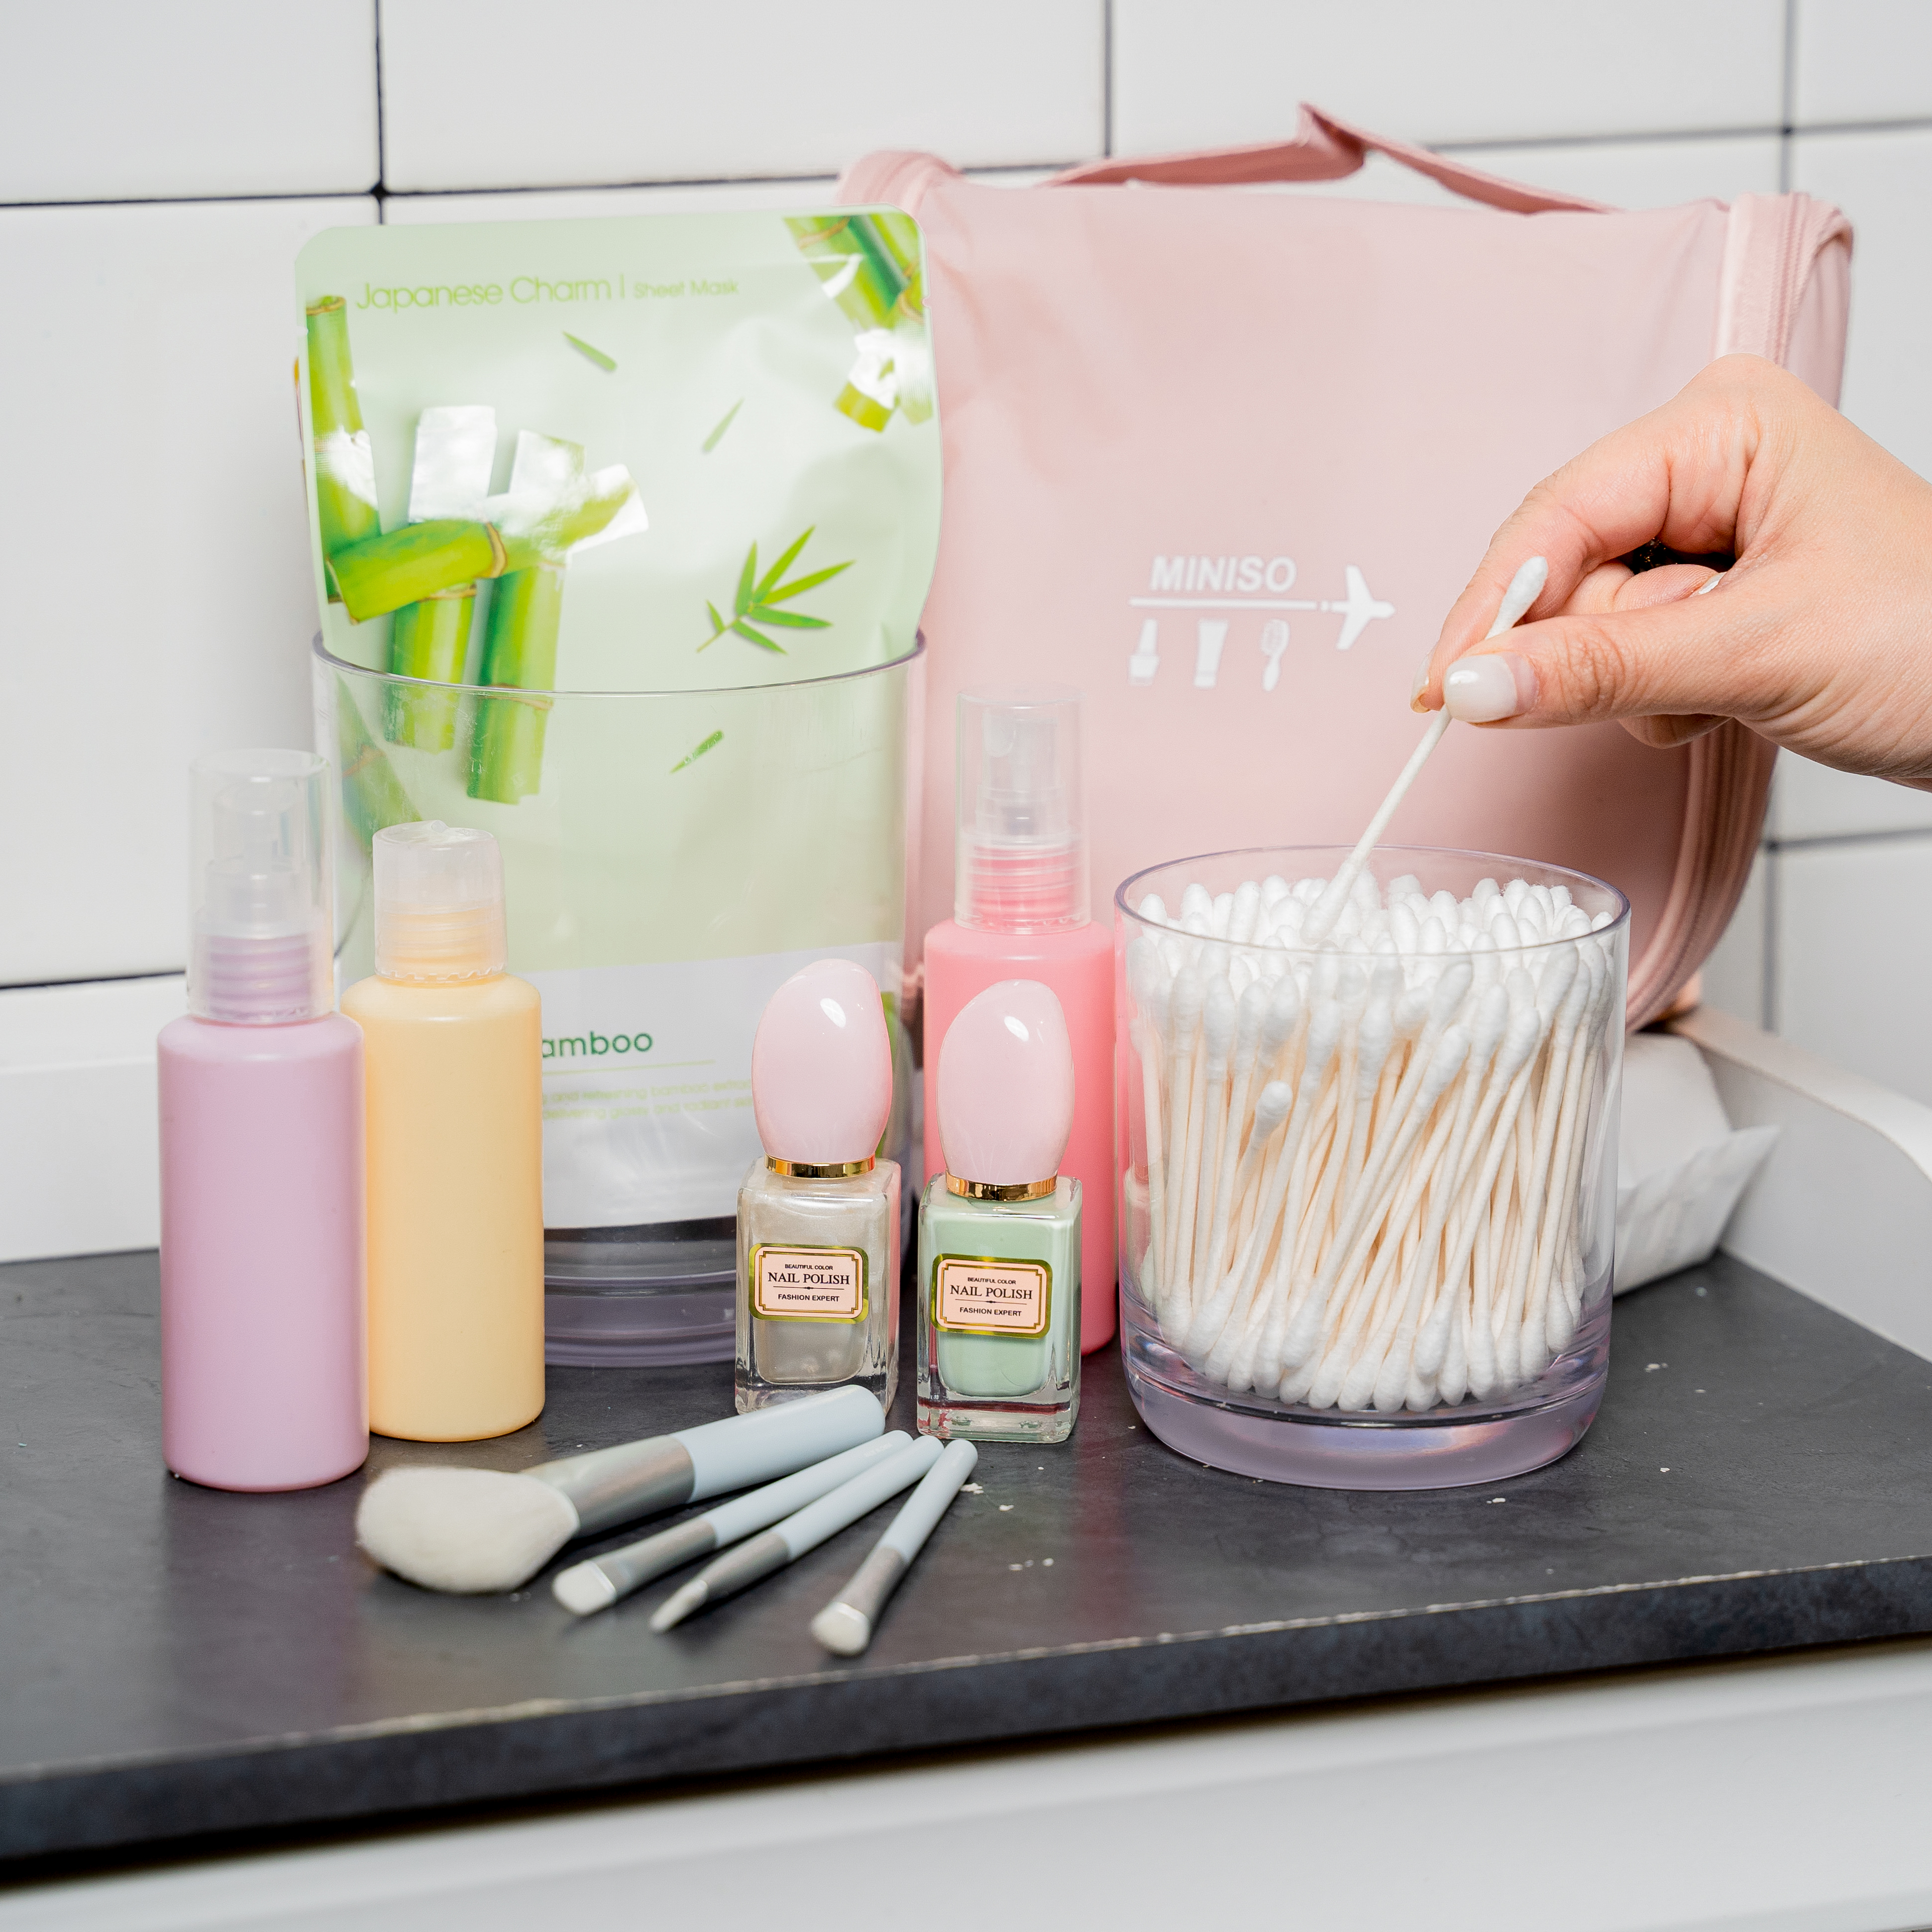 Various bottles of skin care product, cosmetic brushes, creams and q-tips on a black counter top.